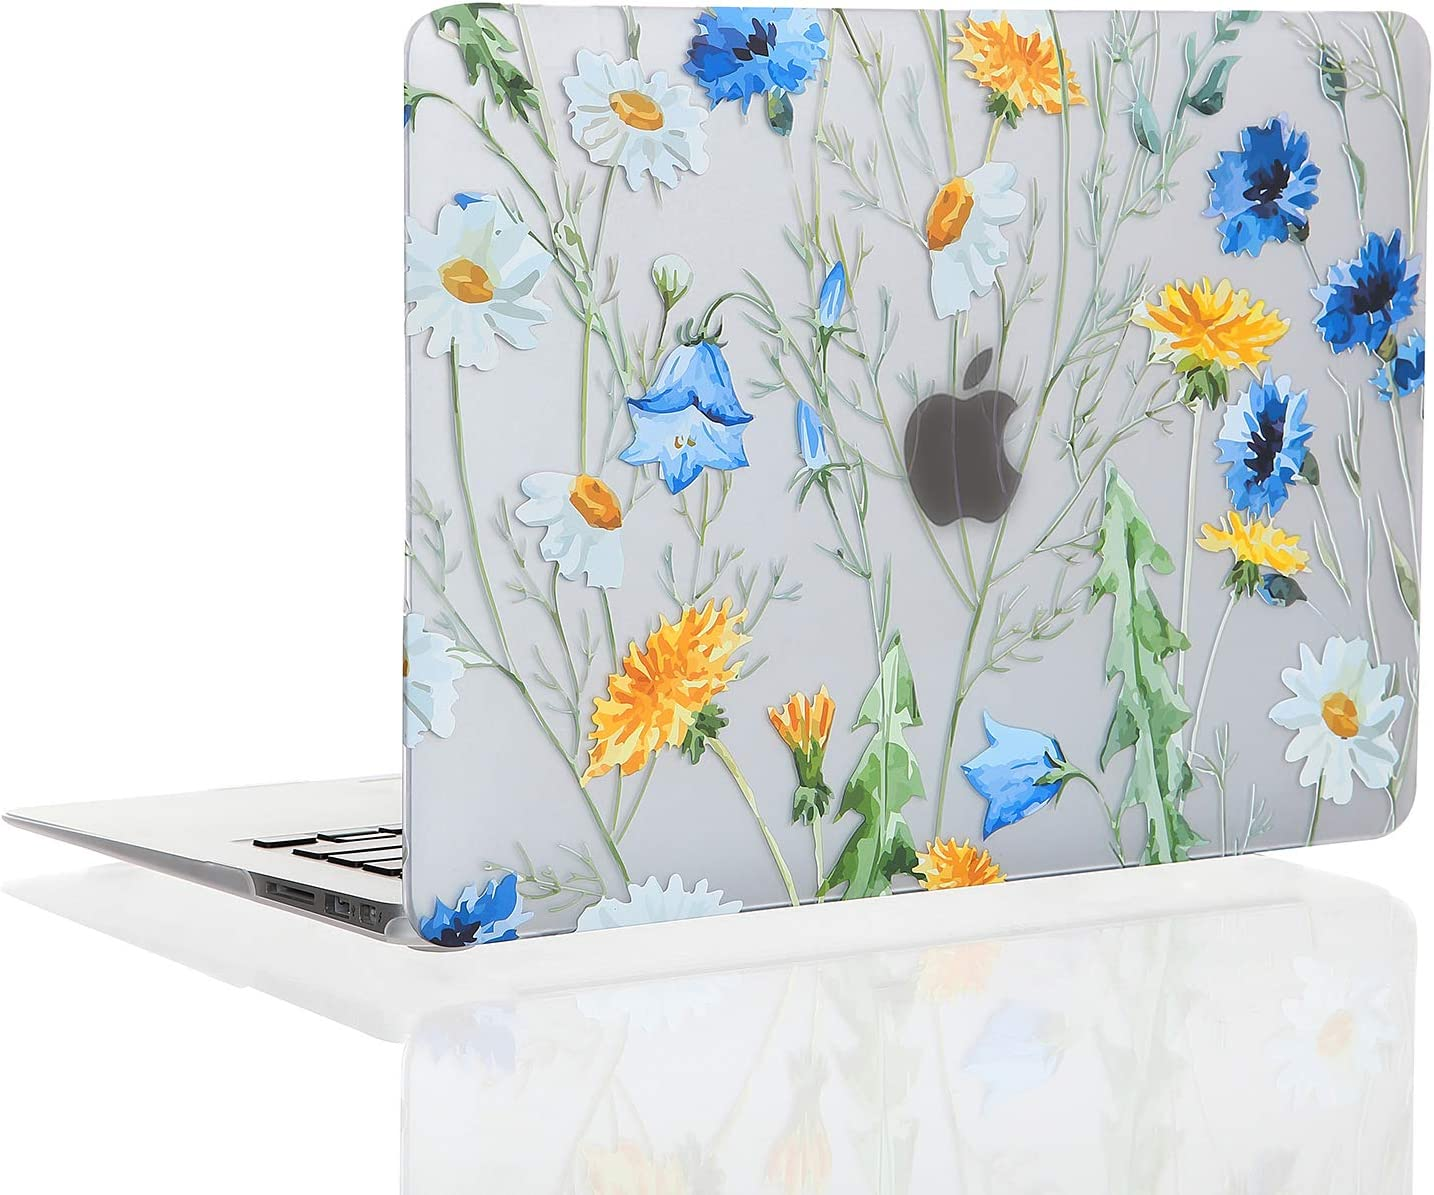 EkuaBot Floral Daisy MacBook Air 13 inch Case (A1369/A1466, Older Version 2010-2017 Release), Matt Rubber Coated Soft Touch Hard Case Only Compatible MacBook Air 13.3